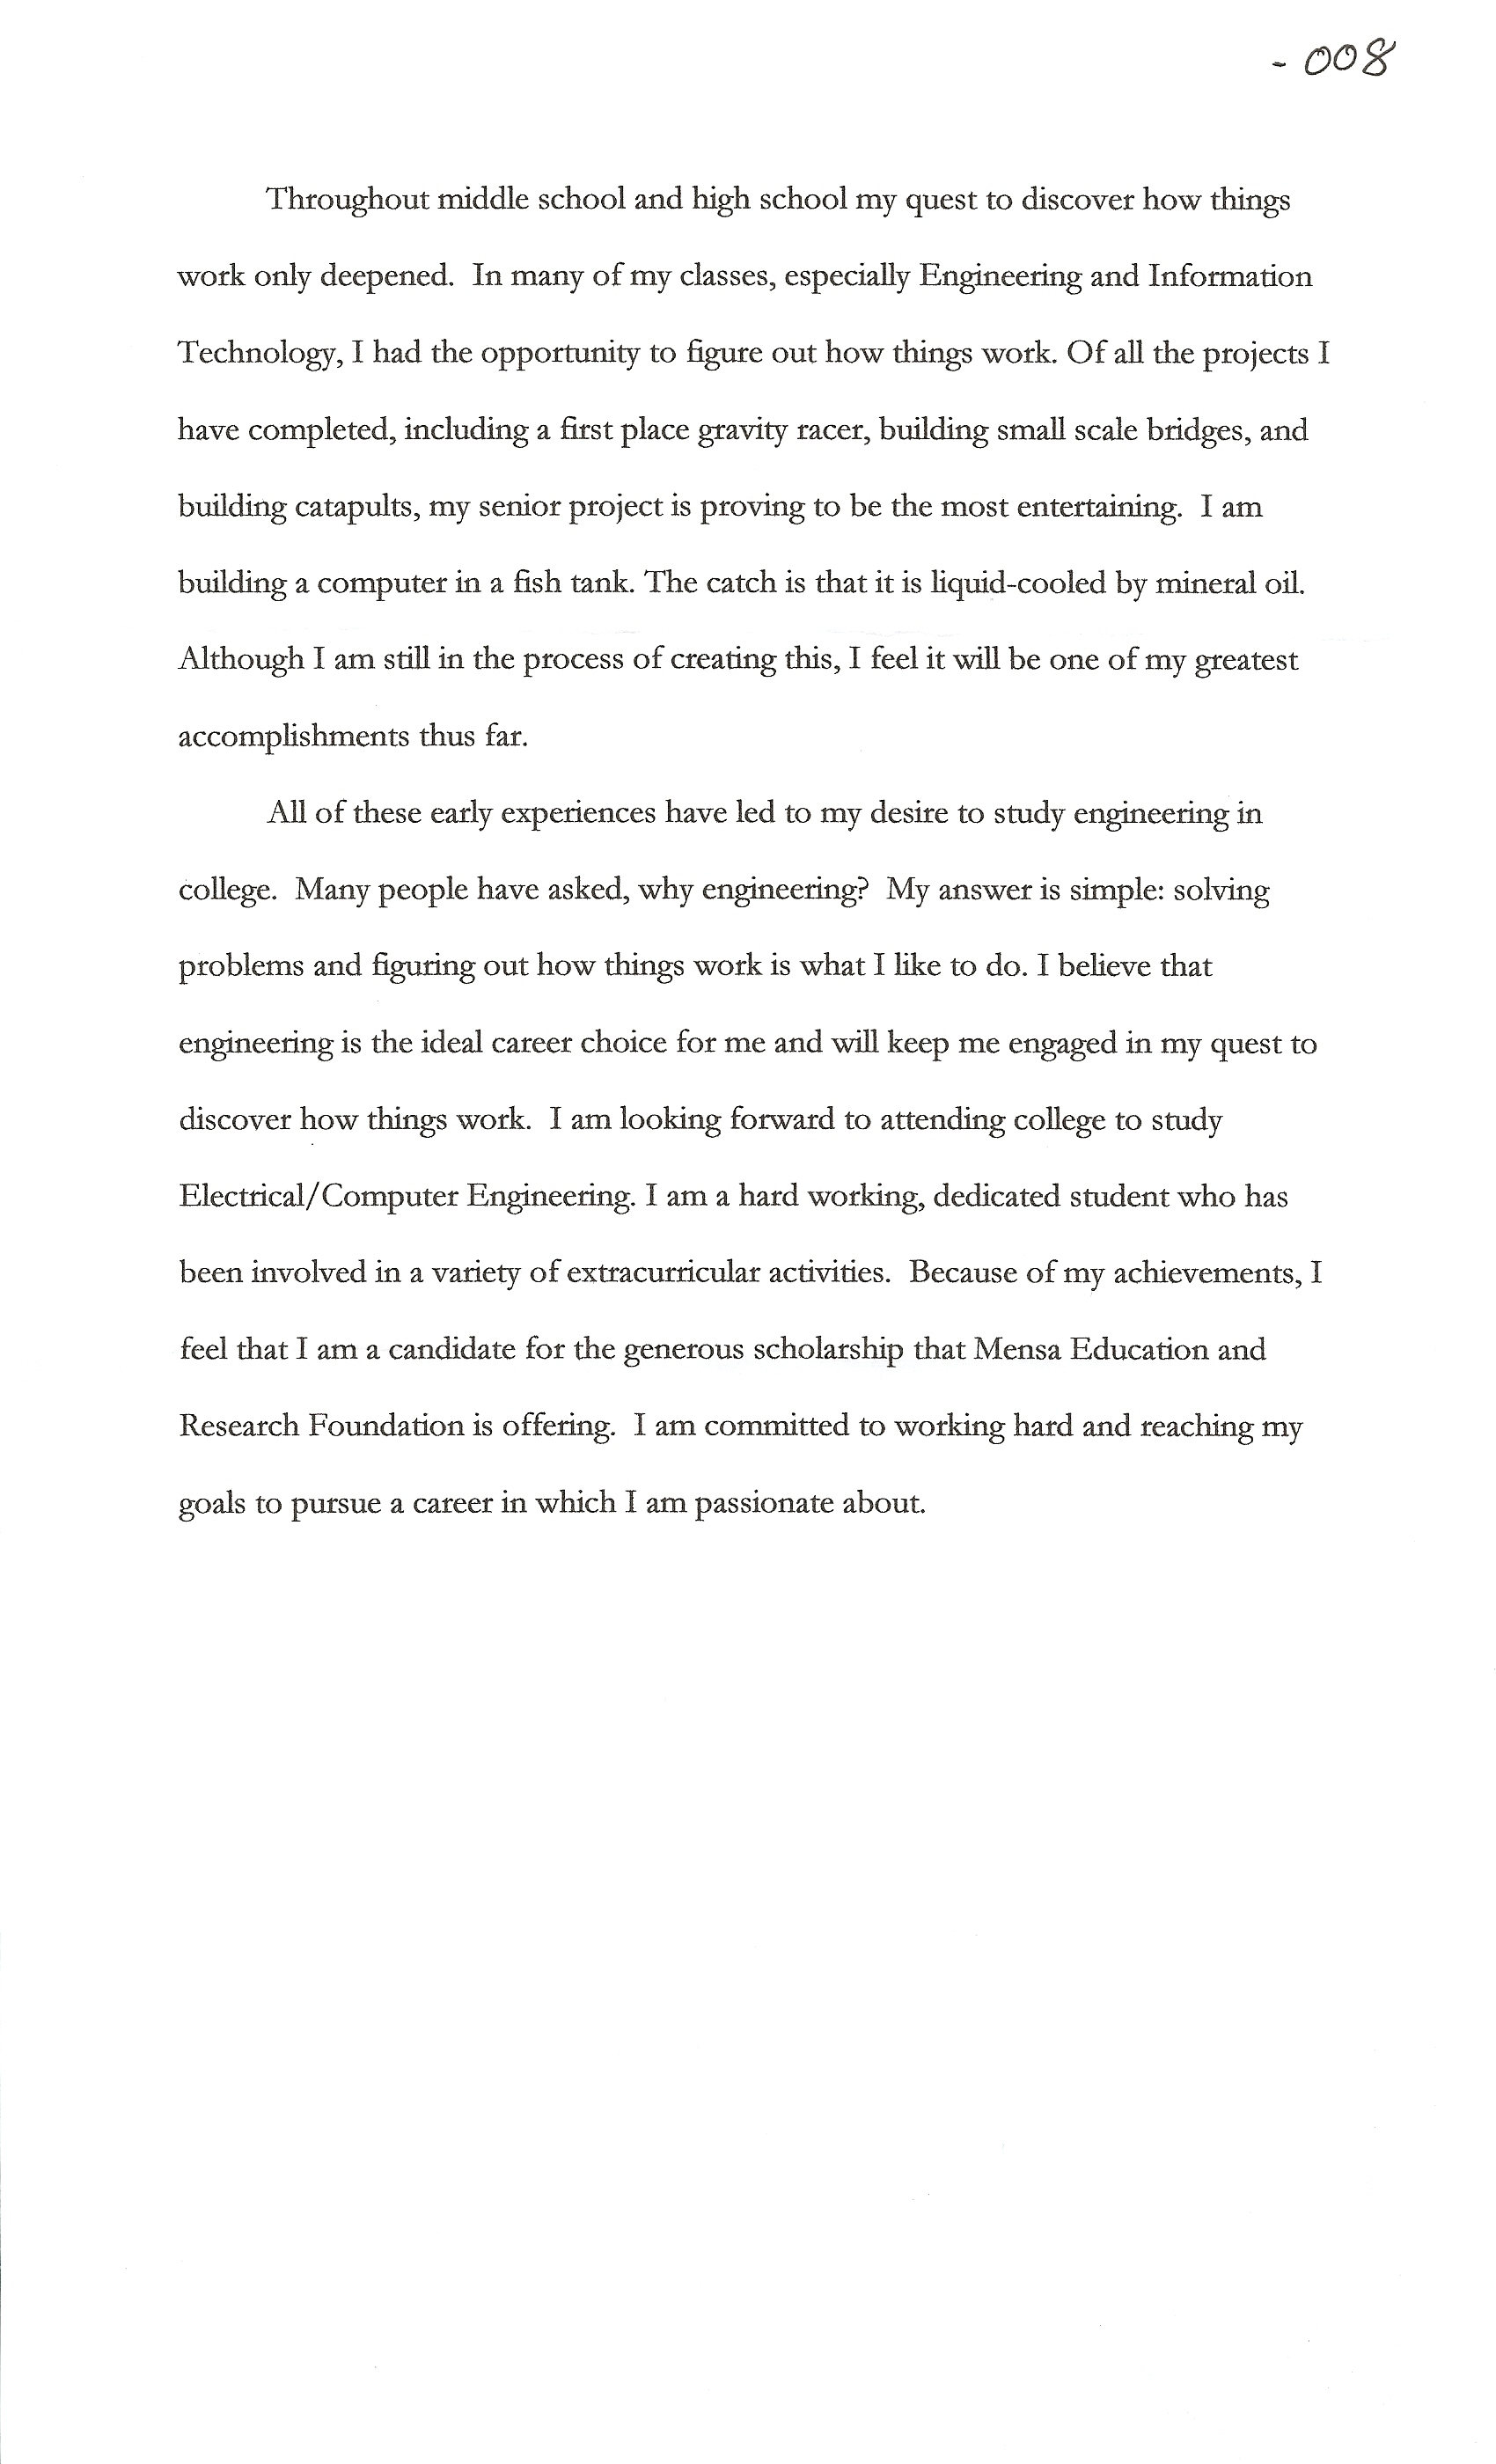 001 Career Goals Essay Example Joshua Cate Fantastic Business Examples Scholarship Pdf Full